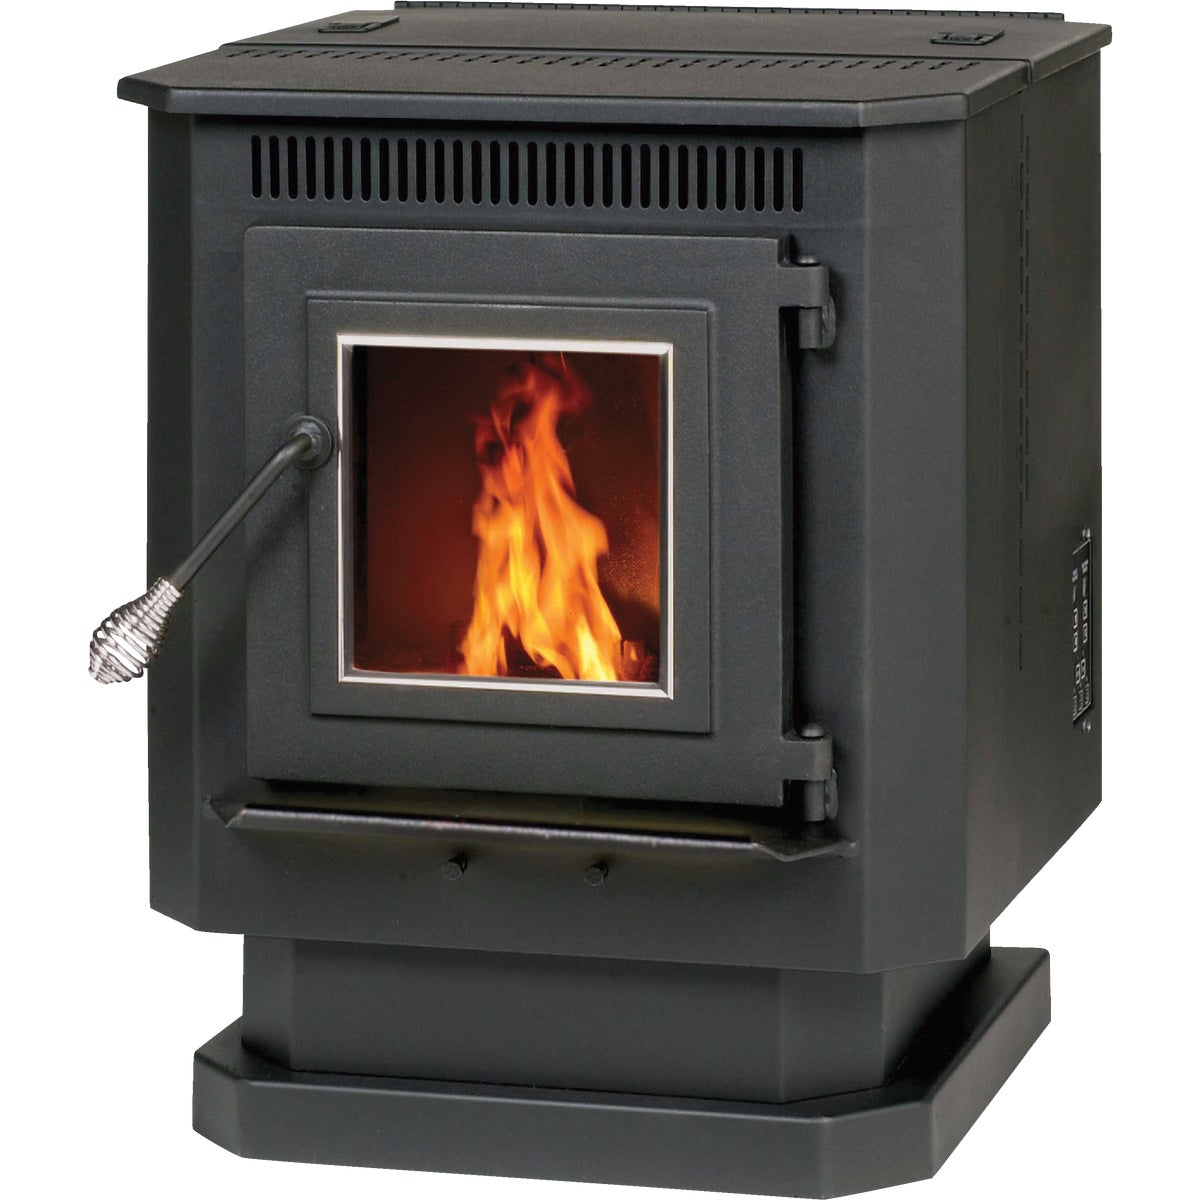 40LB HOPPER PELLET STOVE - 55-SHP10 by Englands Stove Work